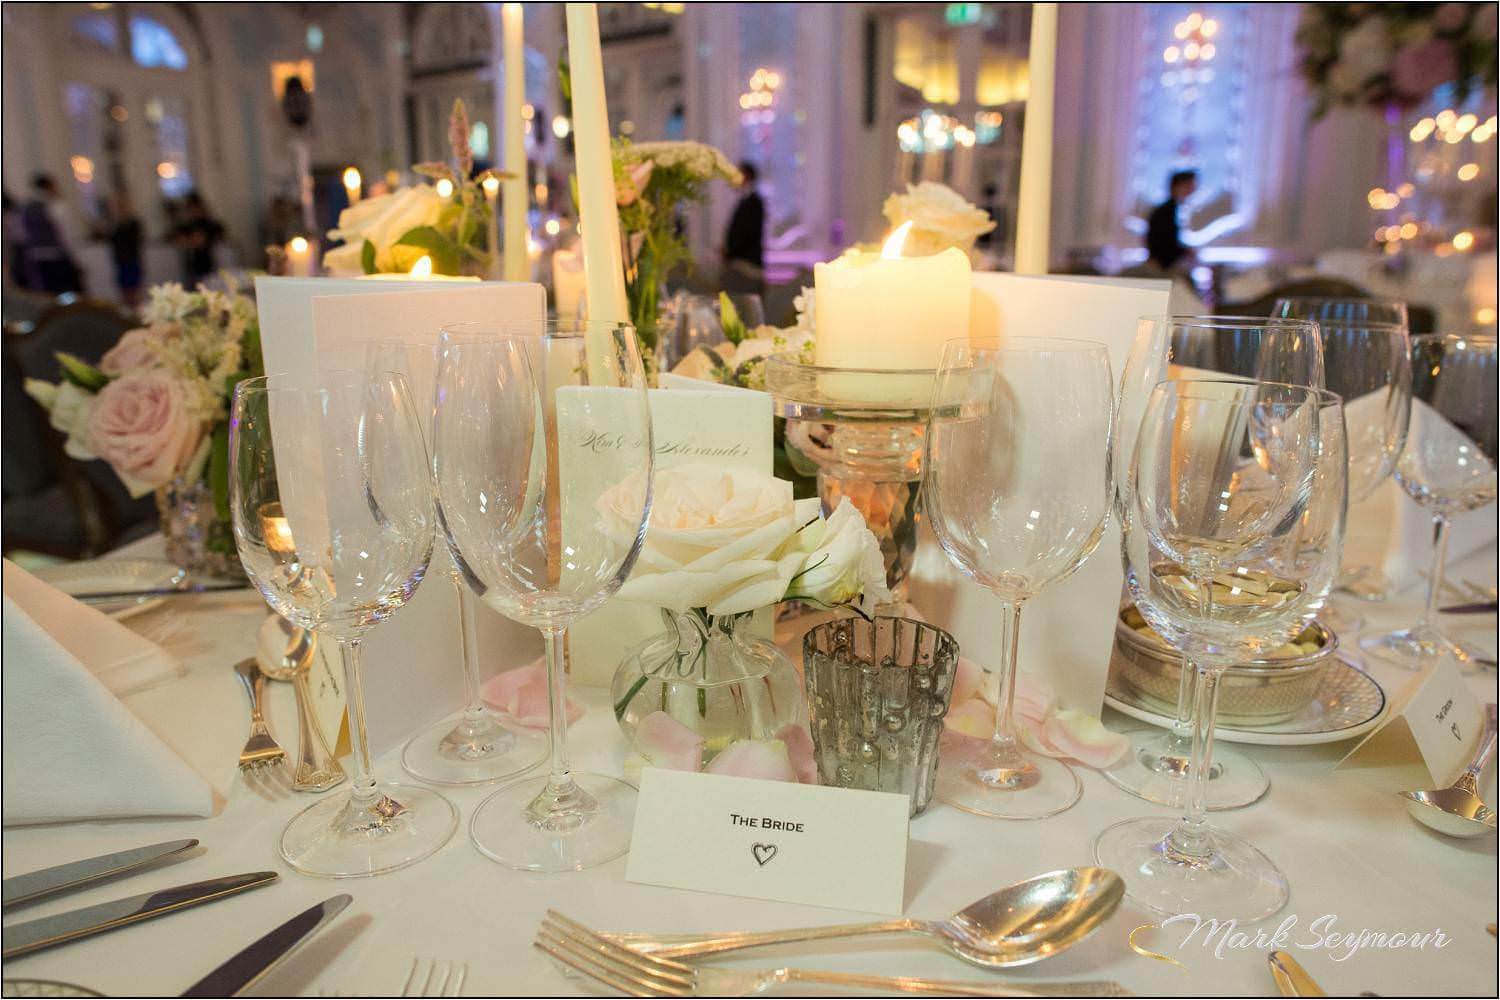 Brides table setting